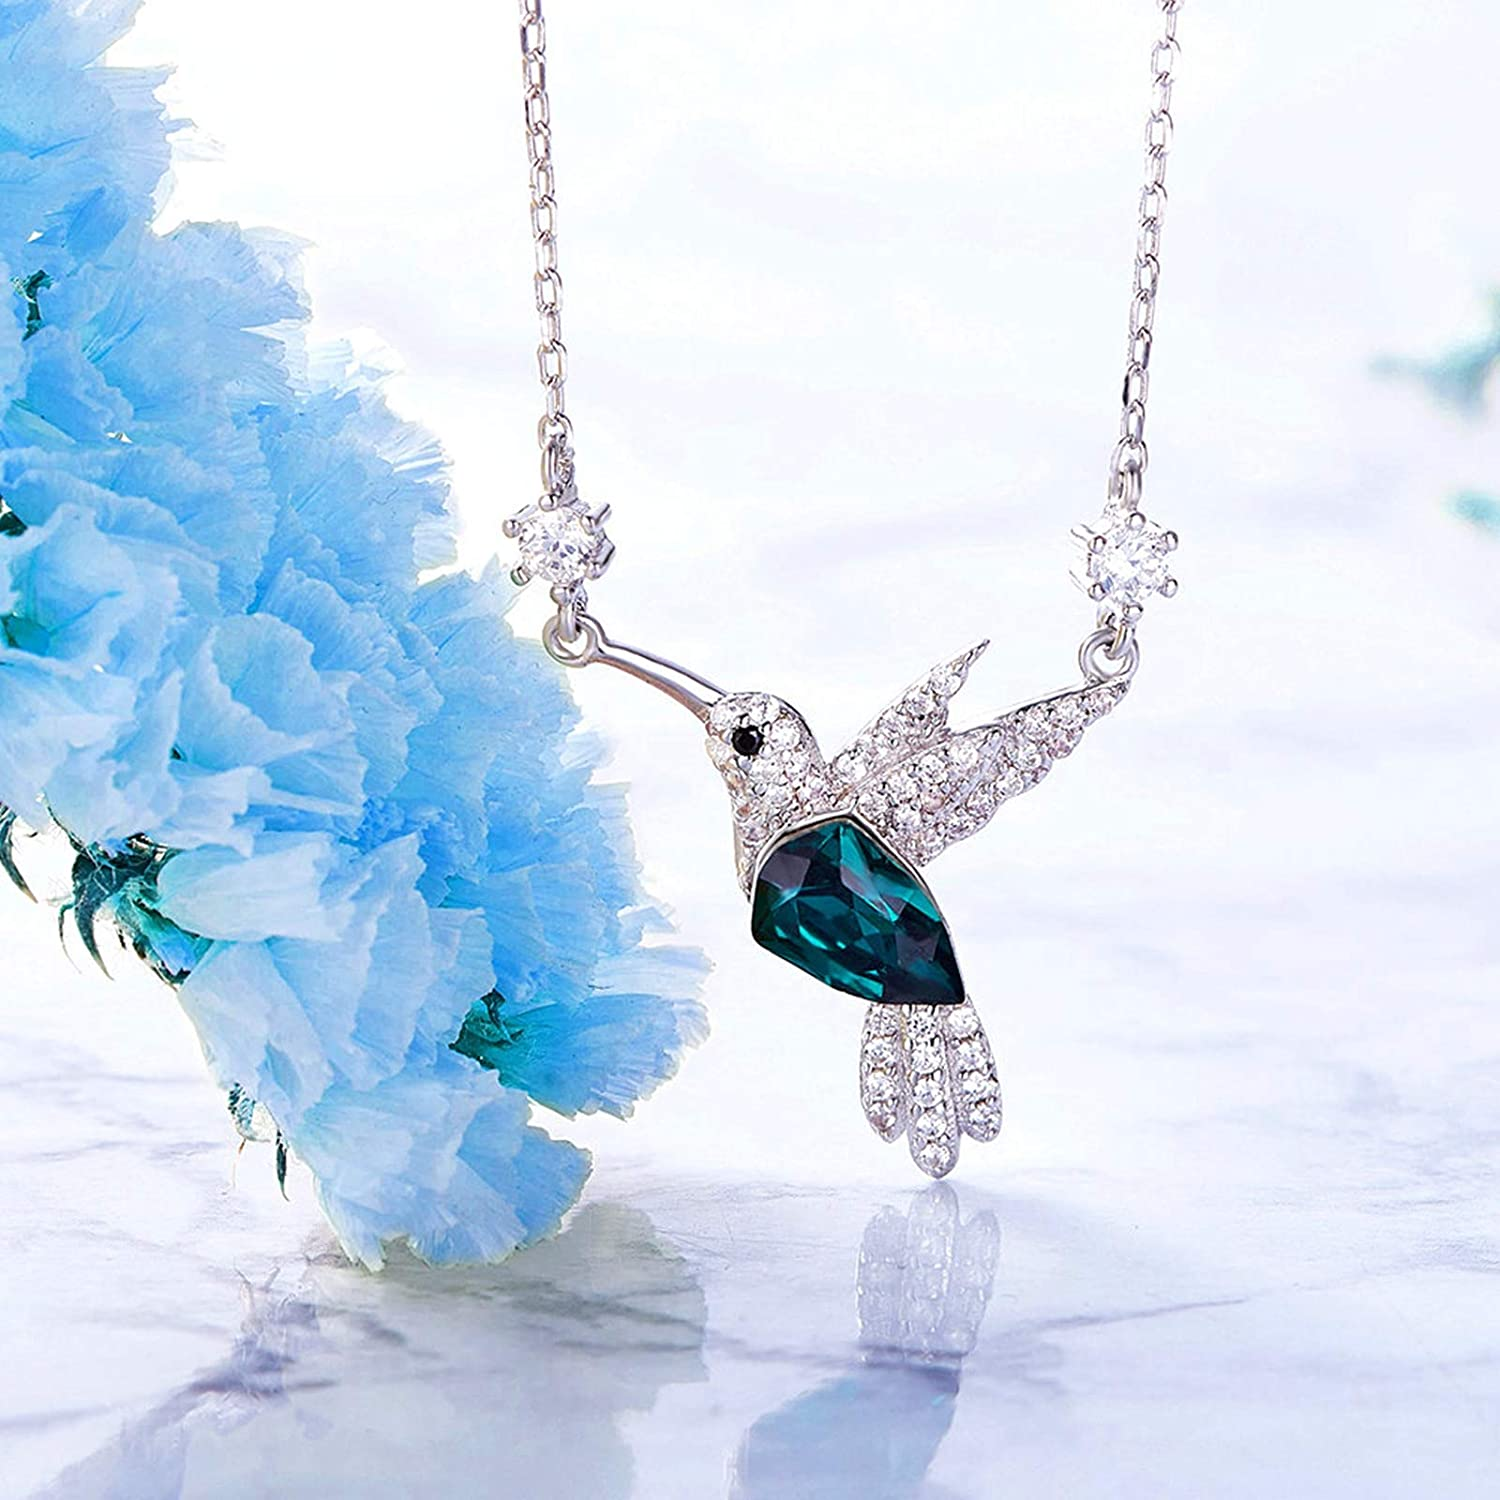 ANAZOZ S925 Sterling Silver Lovebirds Pendant Necklace with Green Crystal